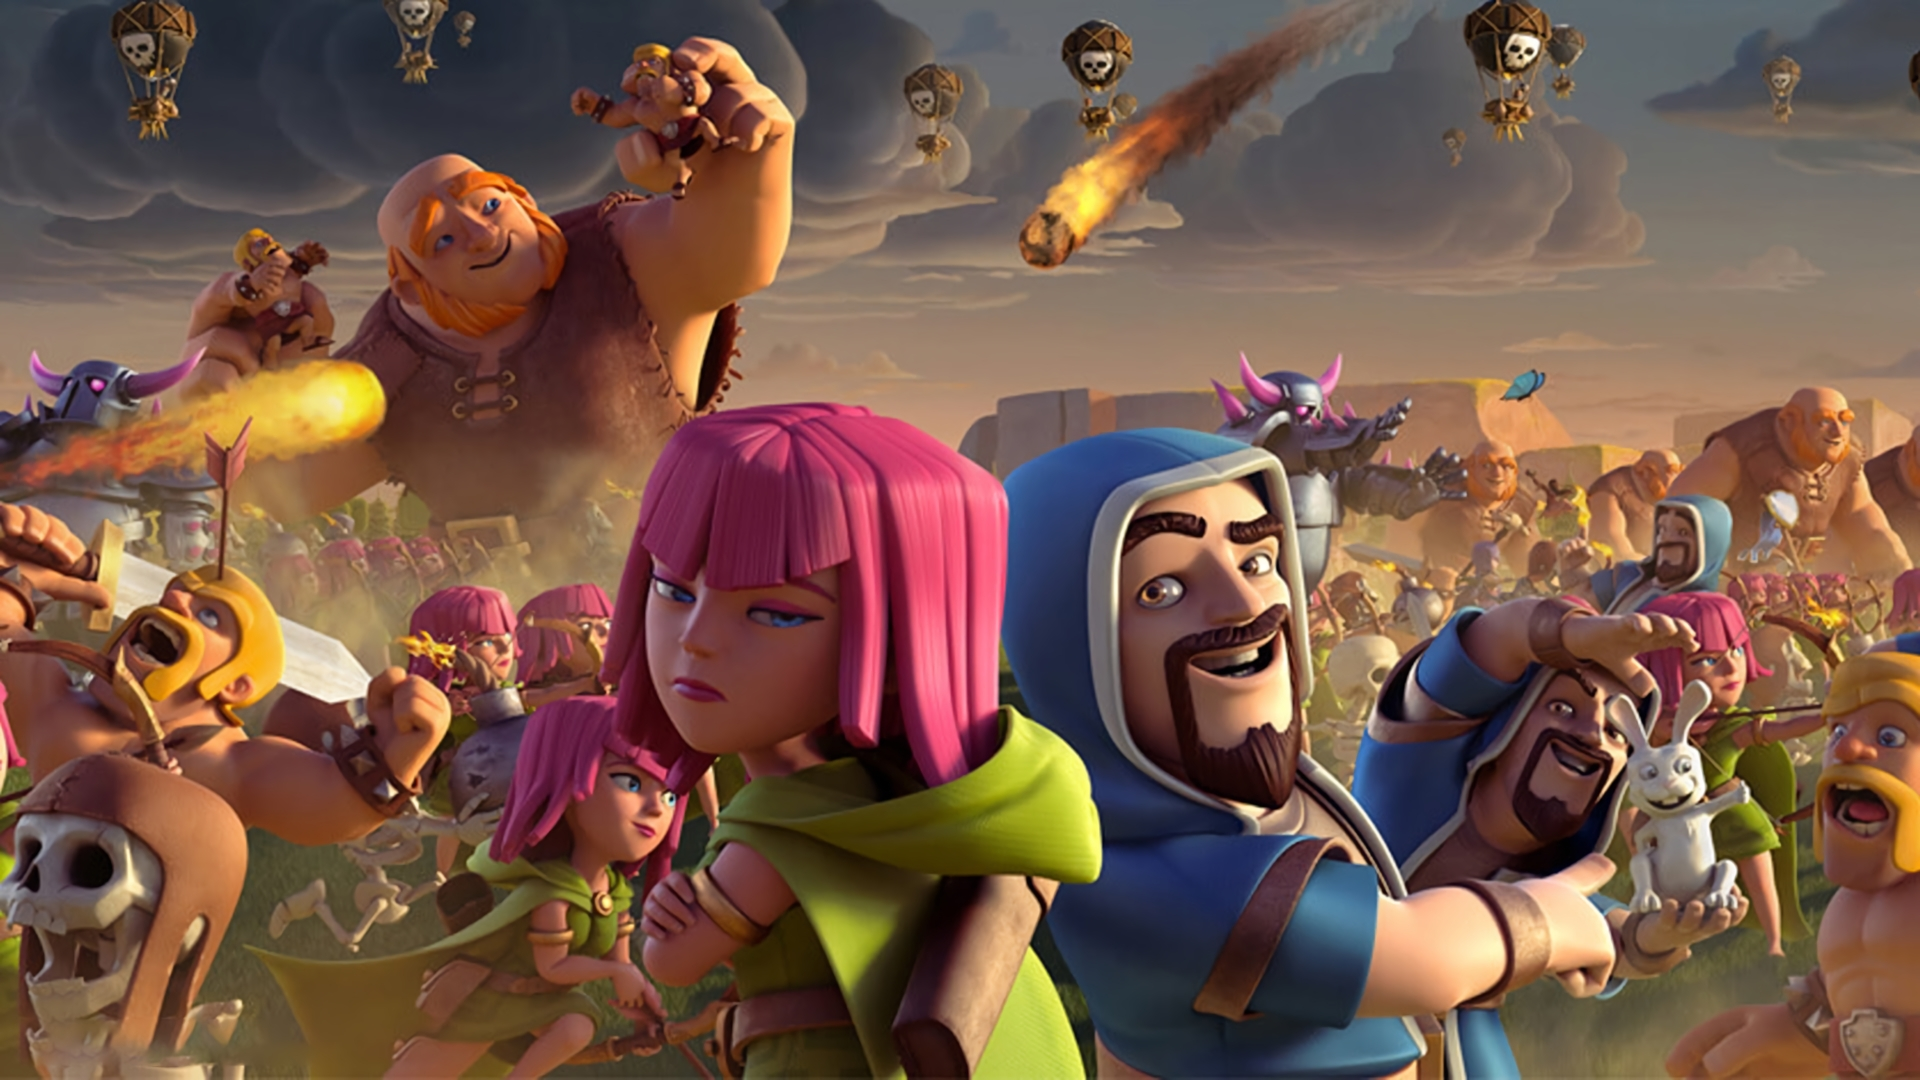 55 clash of clans hd wallpapers | background images - wallpaper abyss